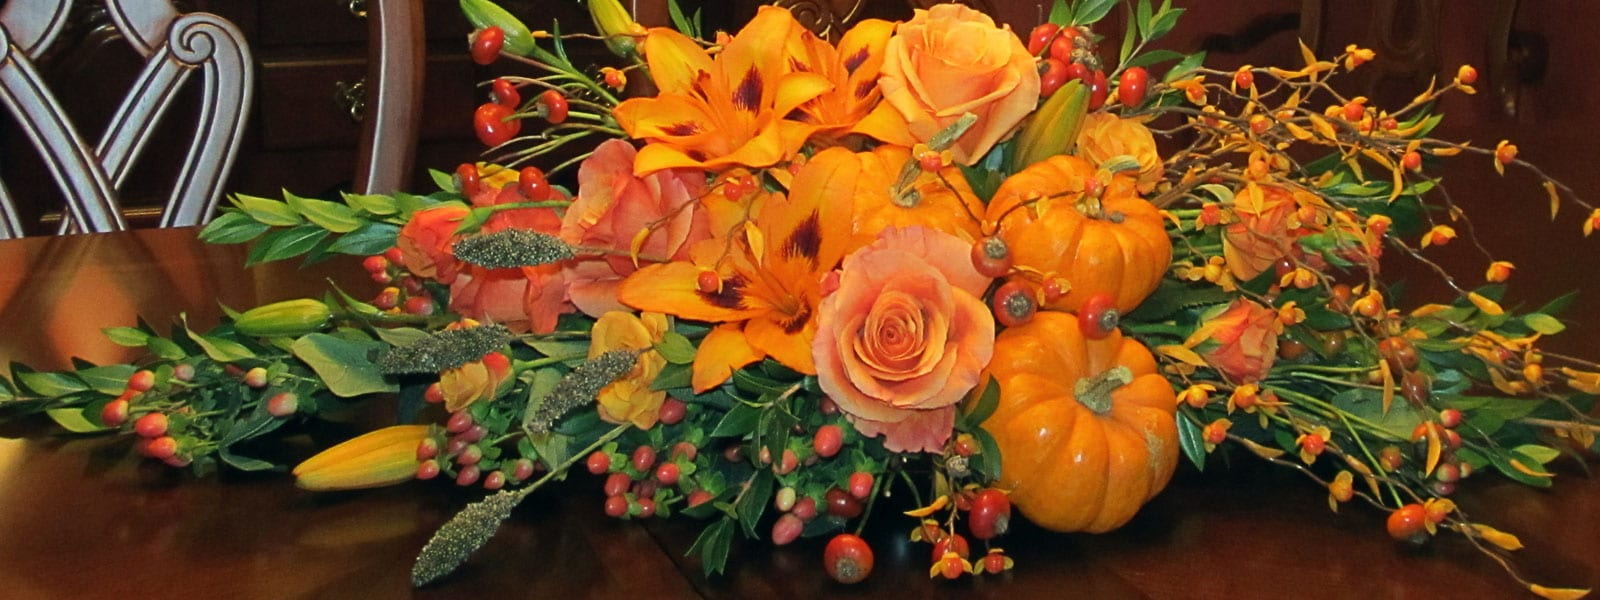 Flowers for the Thanksgiving table